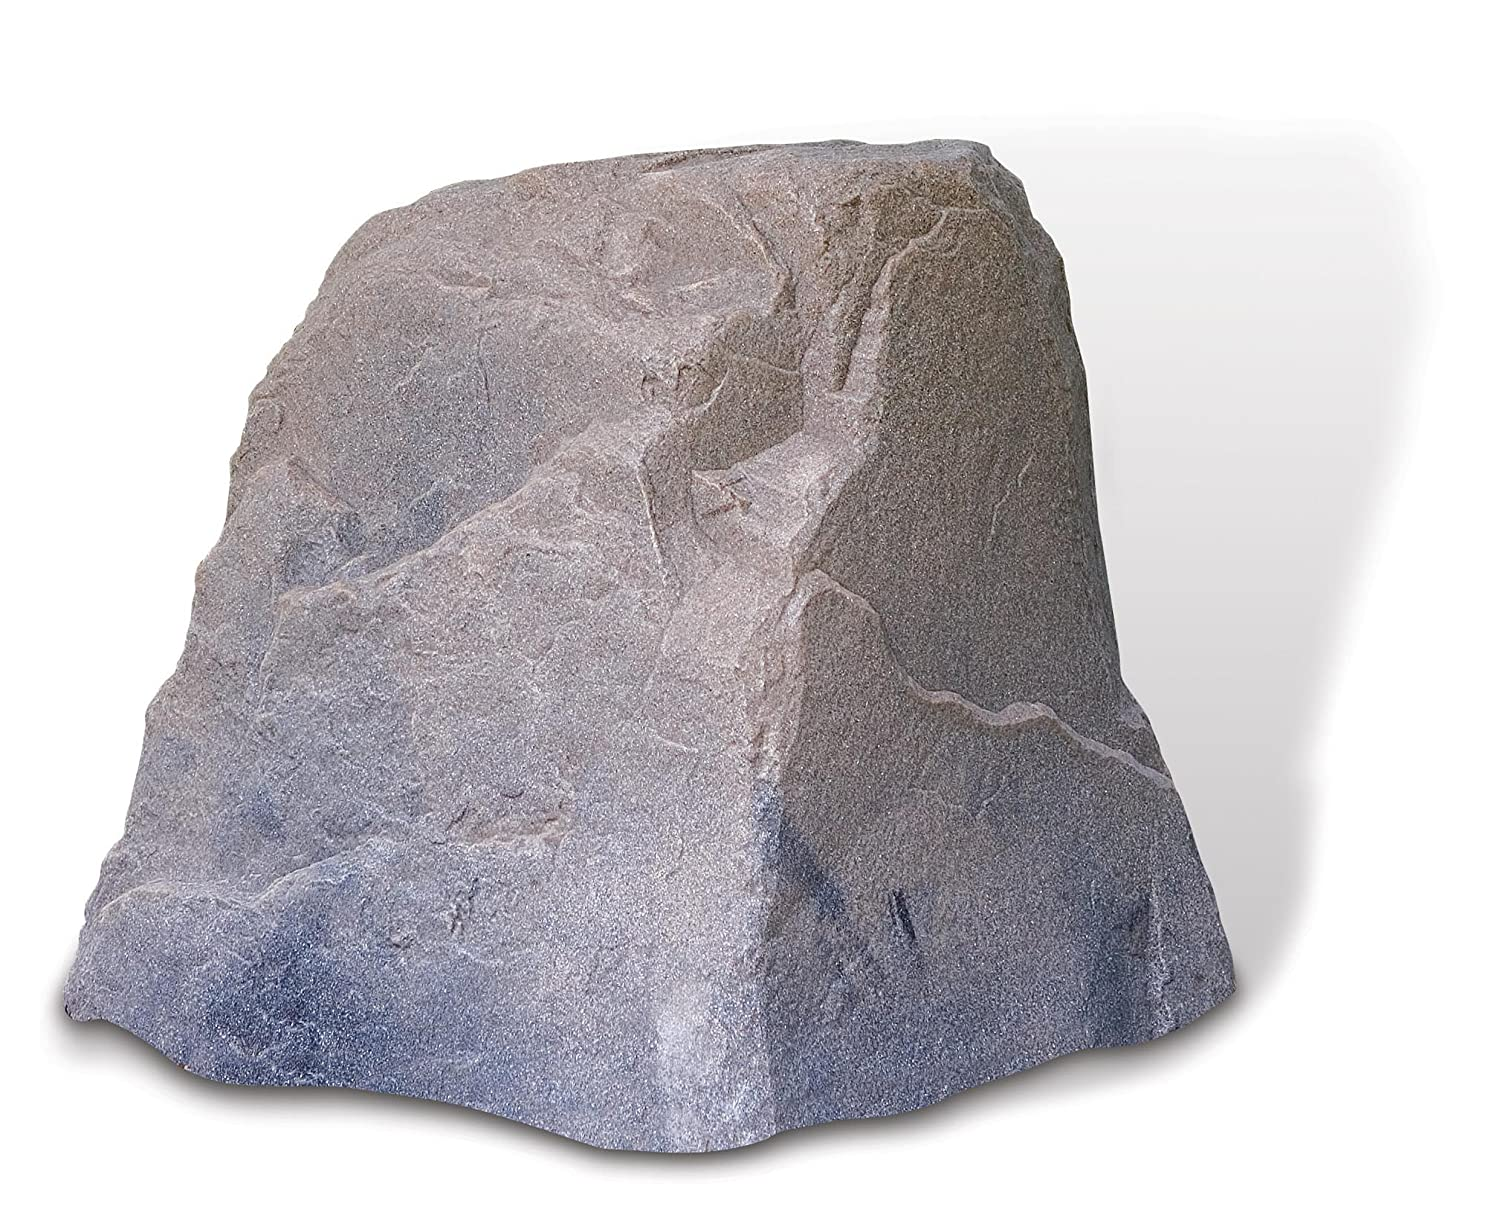 Faux Landscaping Rock Utility Box Covers : Landscaping rocks fake river rock stone utility landscape cover mock